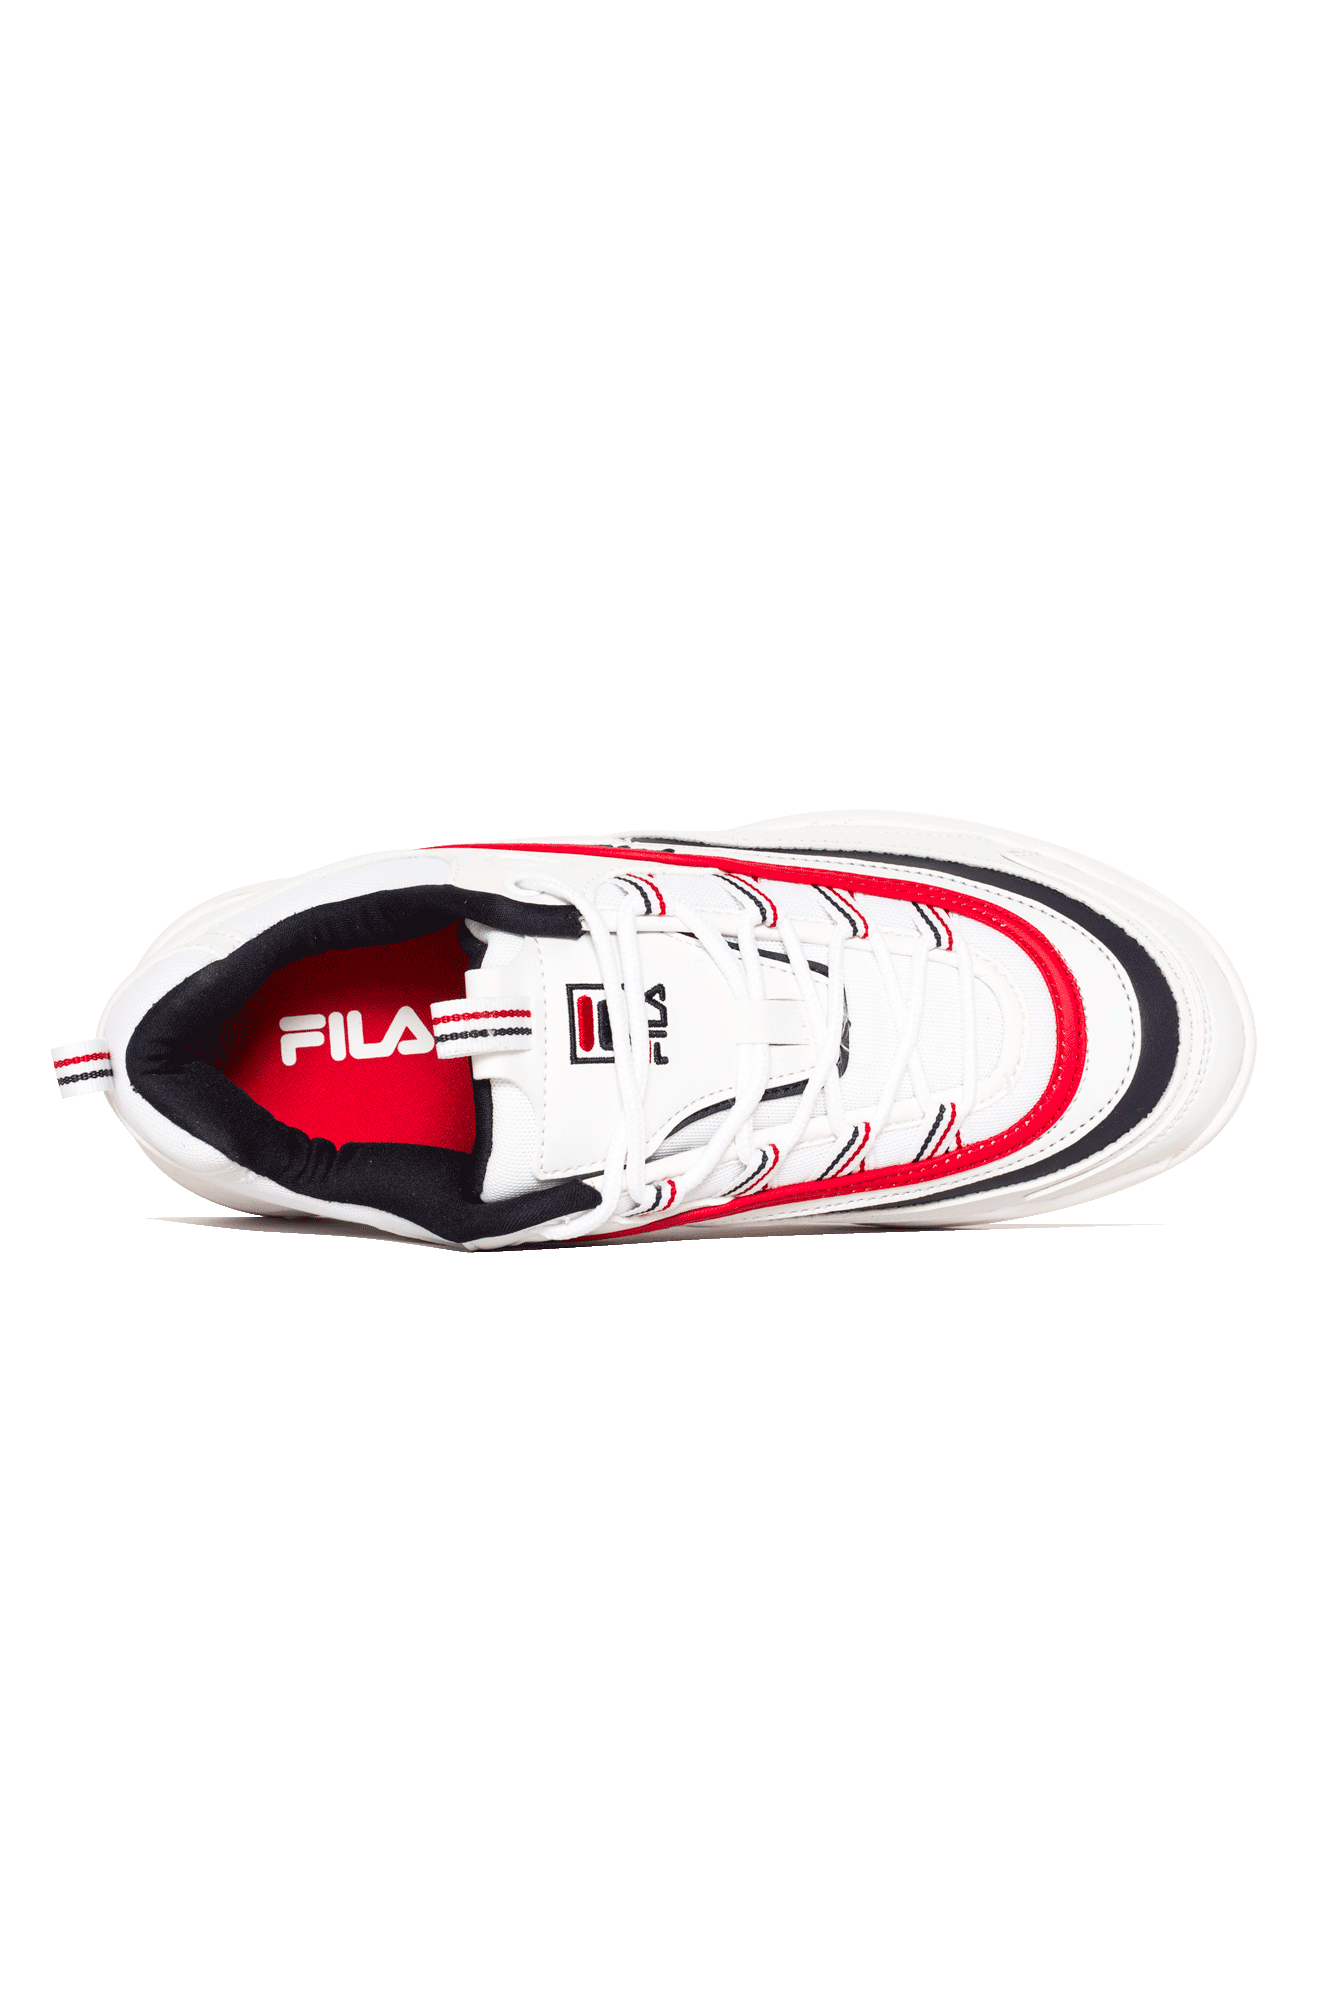 Fila Sneakers Ray Low Bianco 1010561#000#150#7,5 - One Block Down